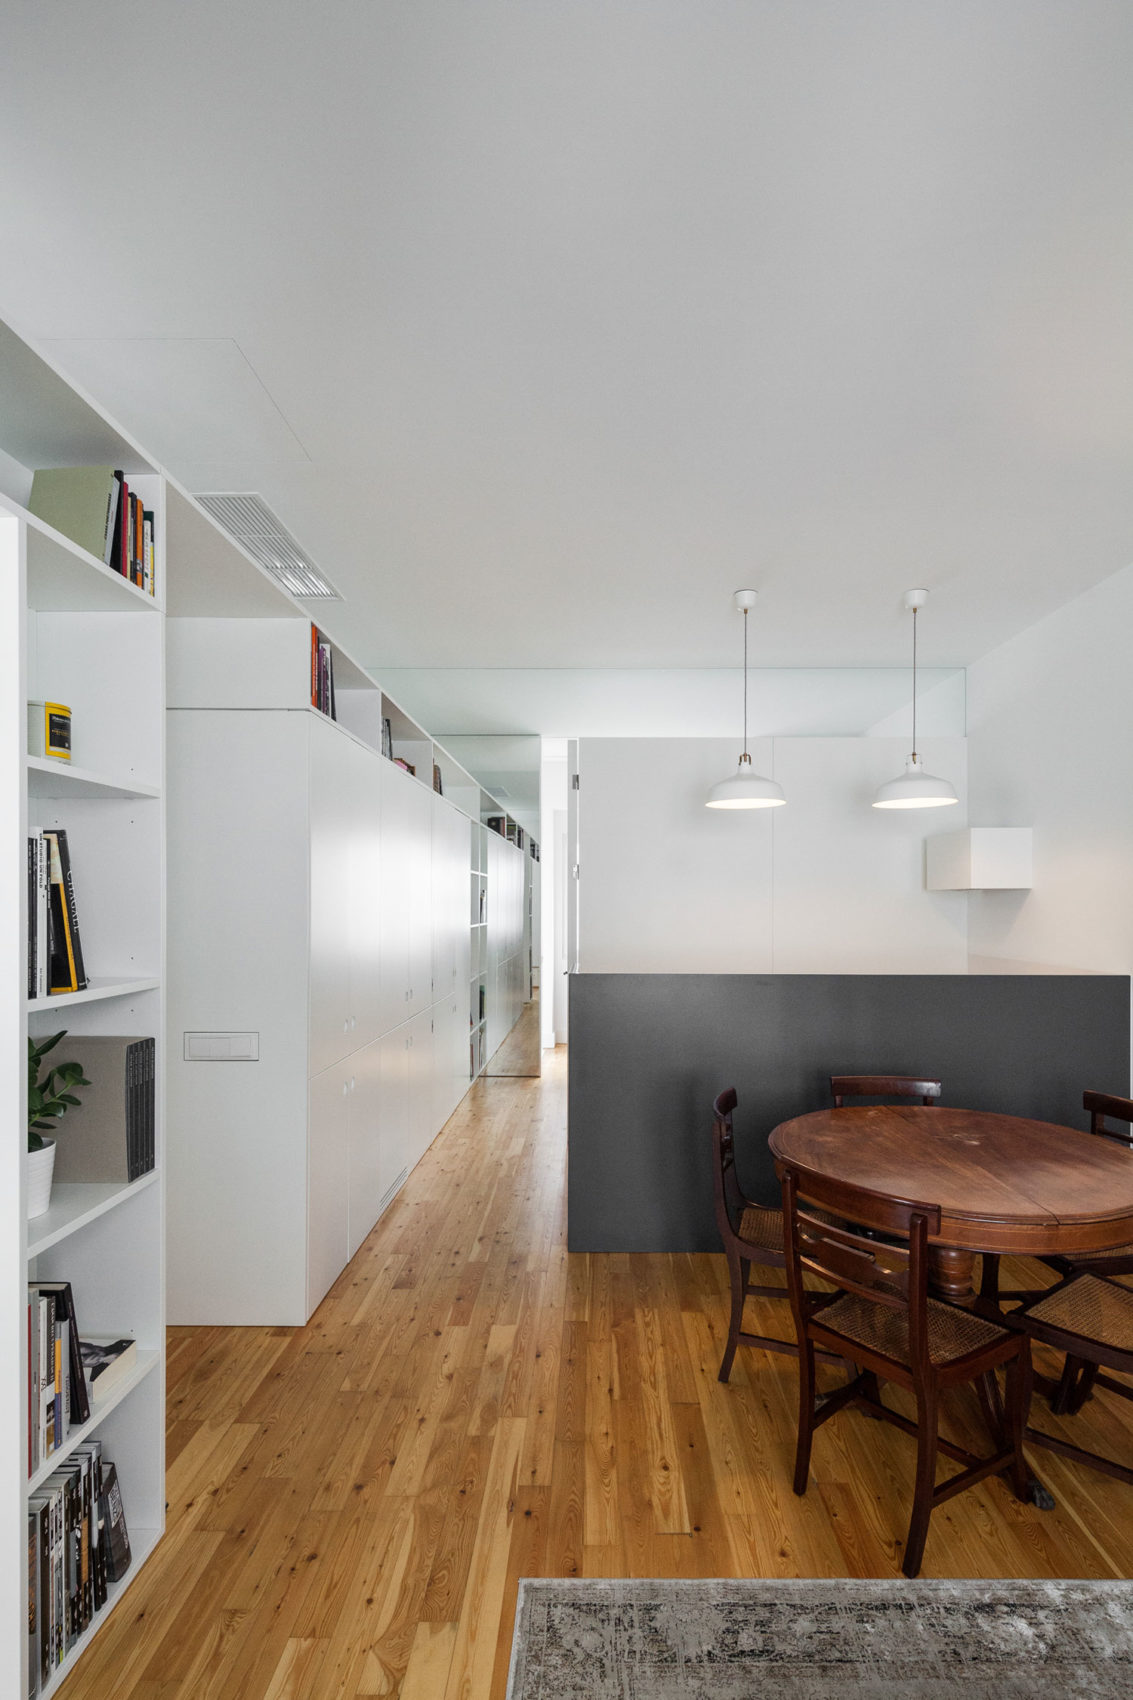 Apartment B9 by Filipe Melo Oliveira (5)